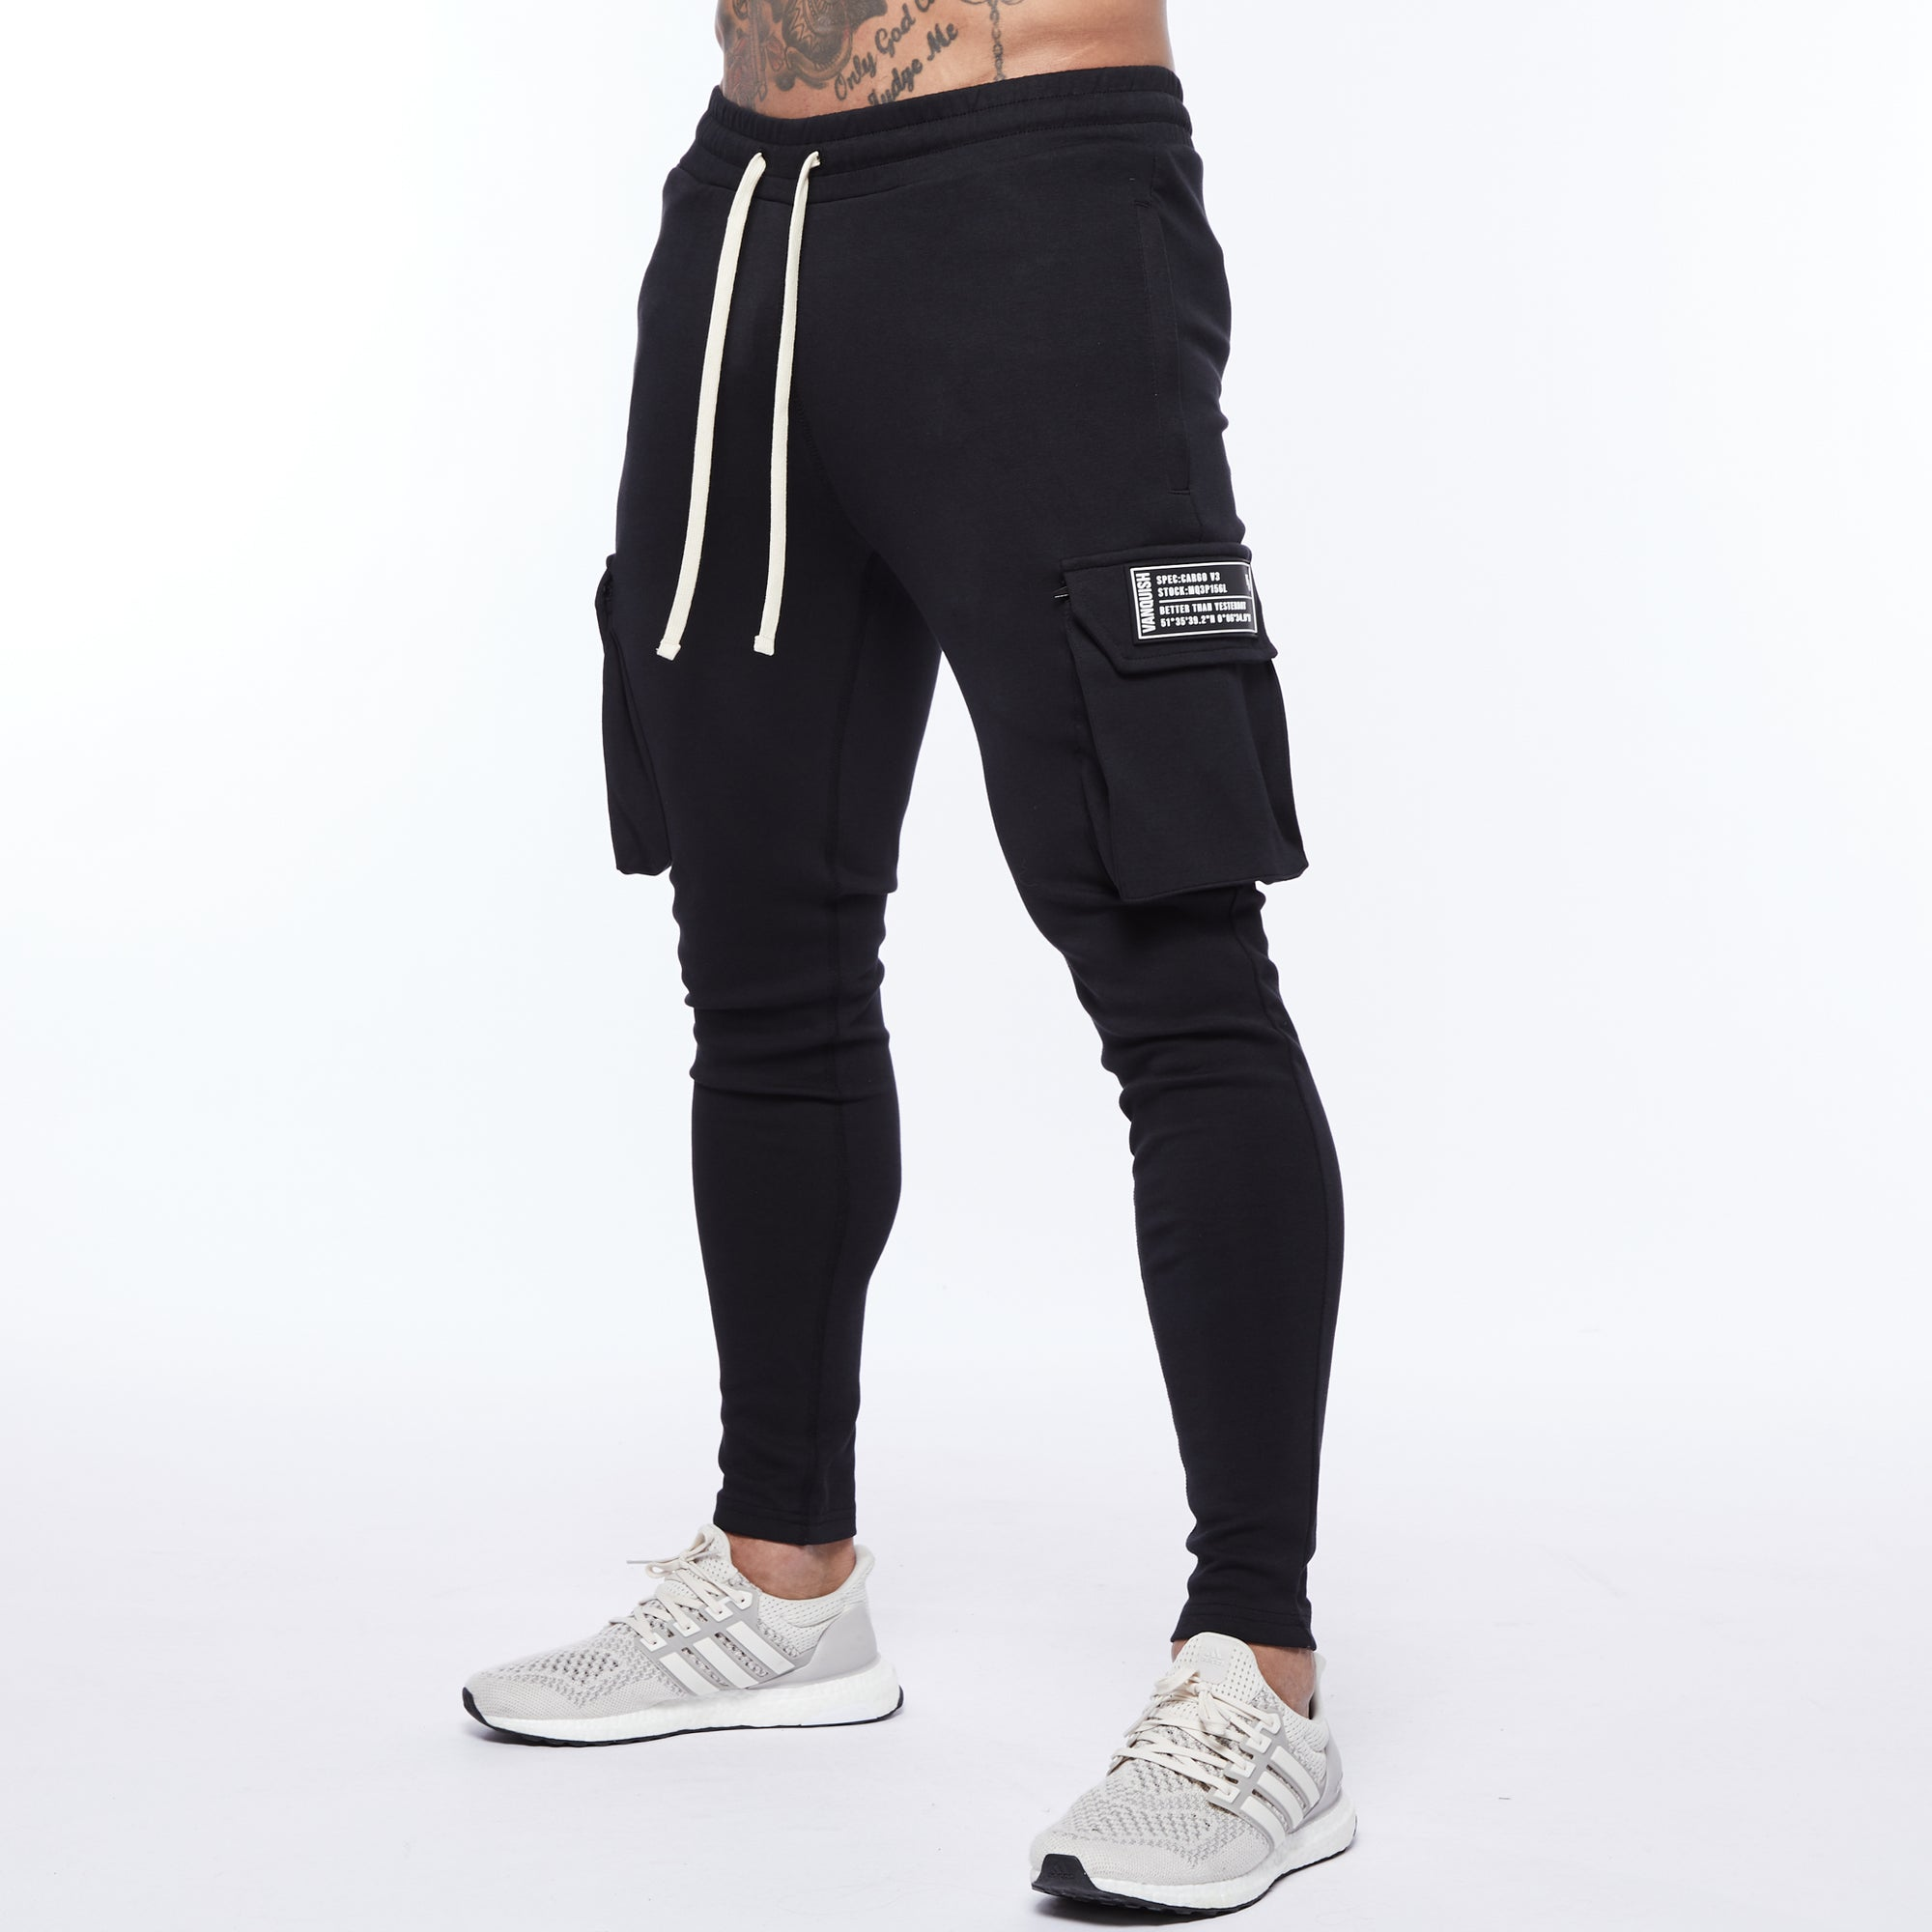 Vanquish Essential Black Tapered Cargo Sweatpants